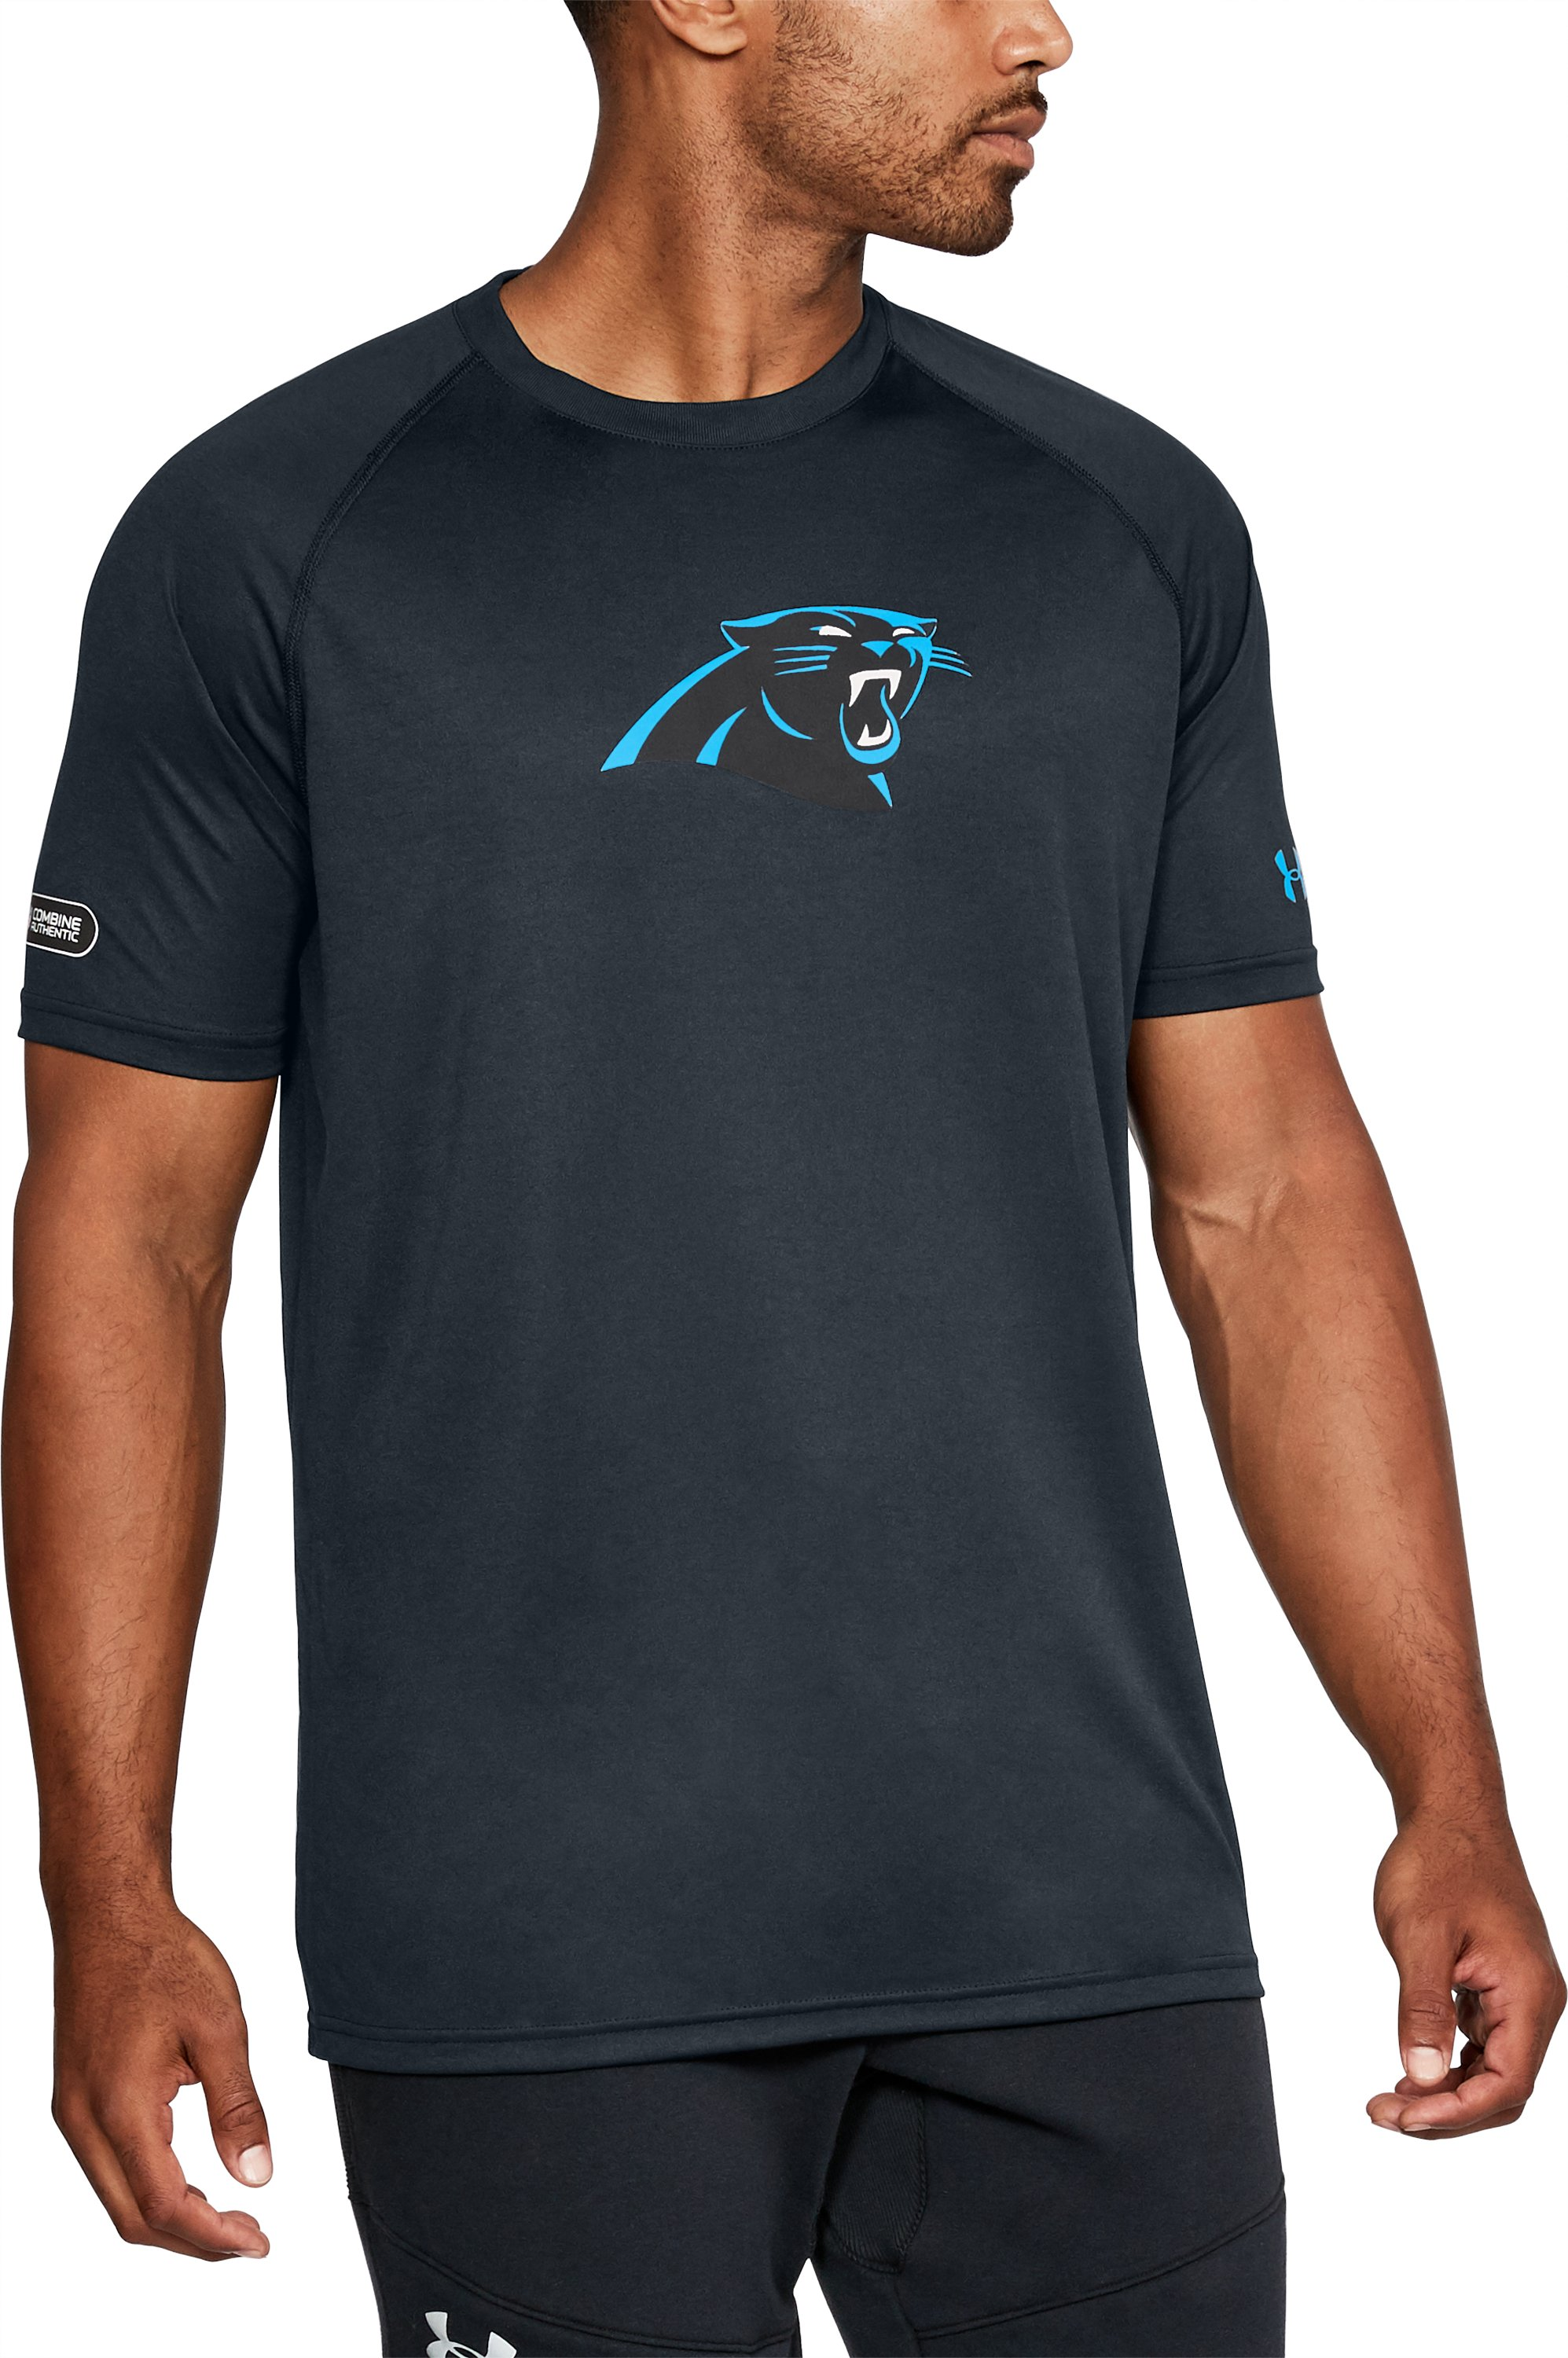 Men's NFL Combine Authentic UA Logo T-Shirt, Carolina Panthers